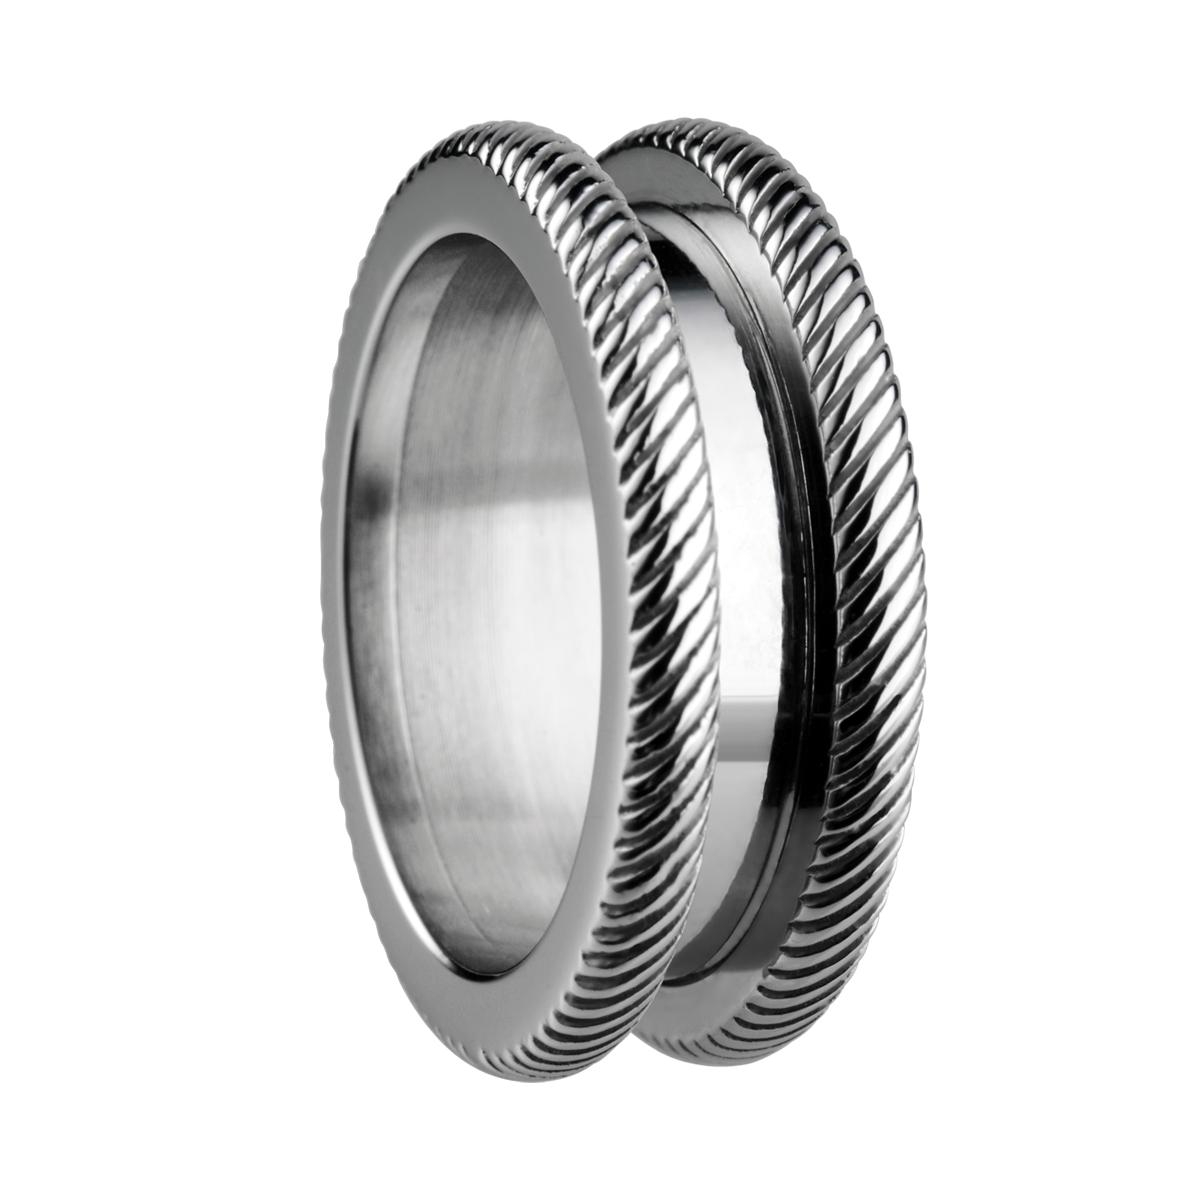 Bering Outer Ring 5211093 1